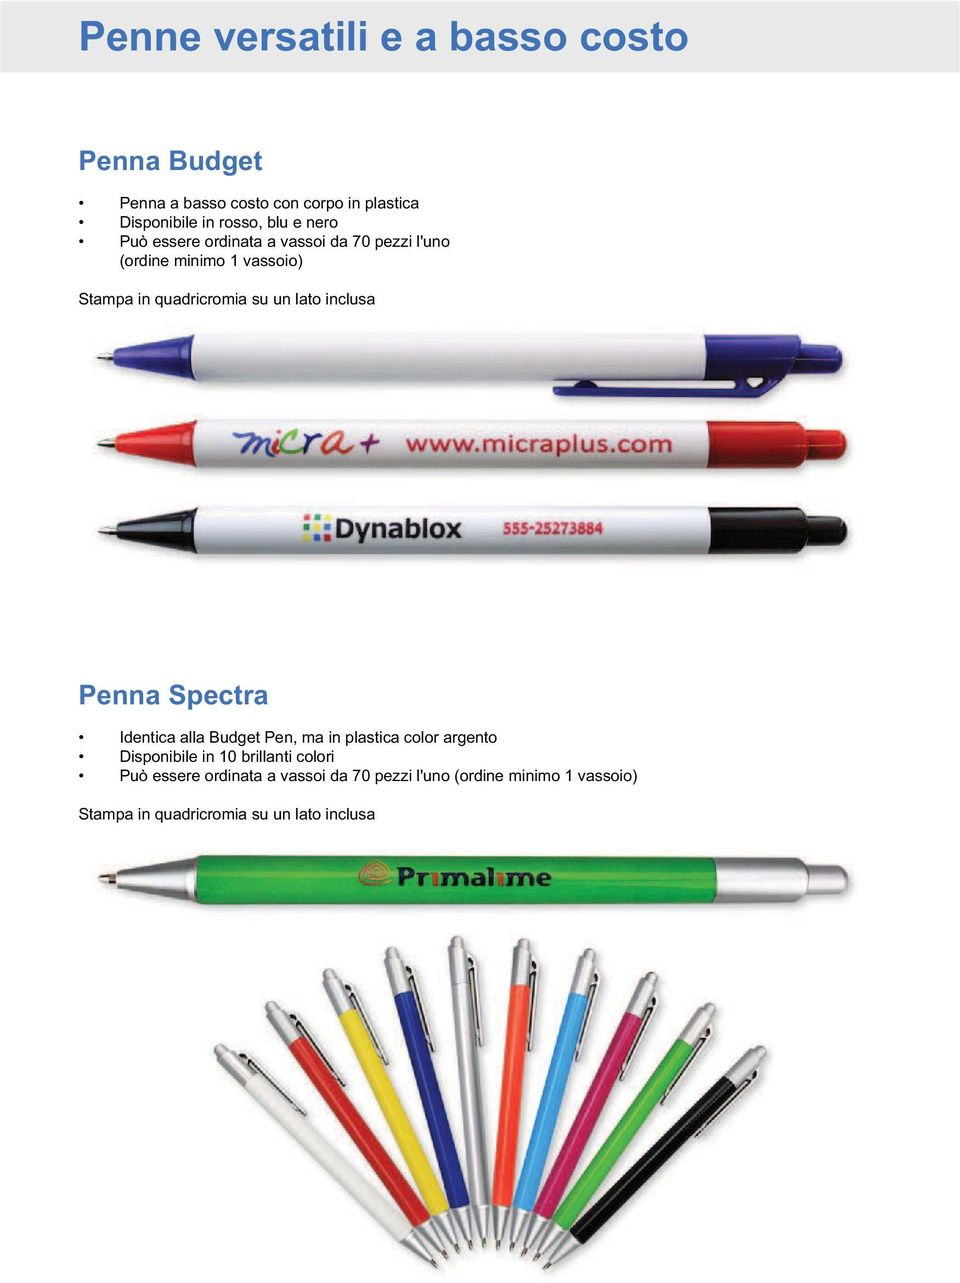 inclusa Penna Spectra Identica alla Budget Pen, ma in plastica color argento Disponibile in 10 brillanti colori